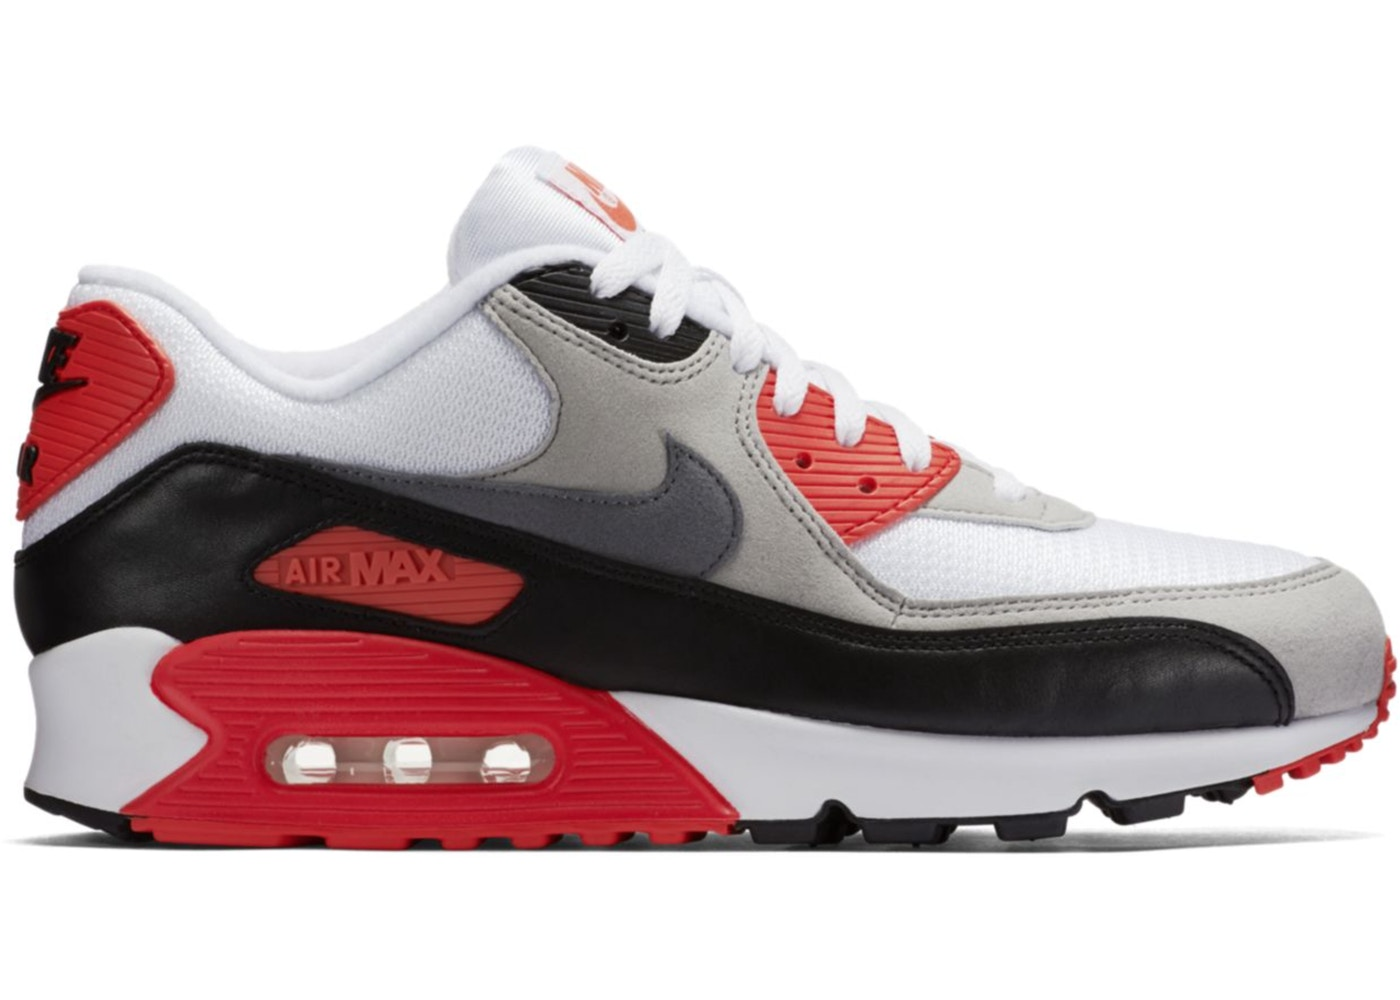 huge discount e2c07 fdff0 Air Max 90 OG Infrared (2015) - 725233-106